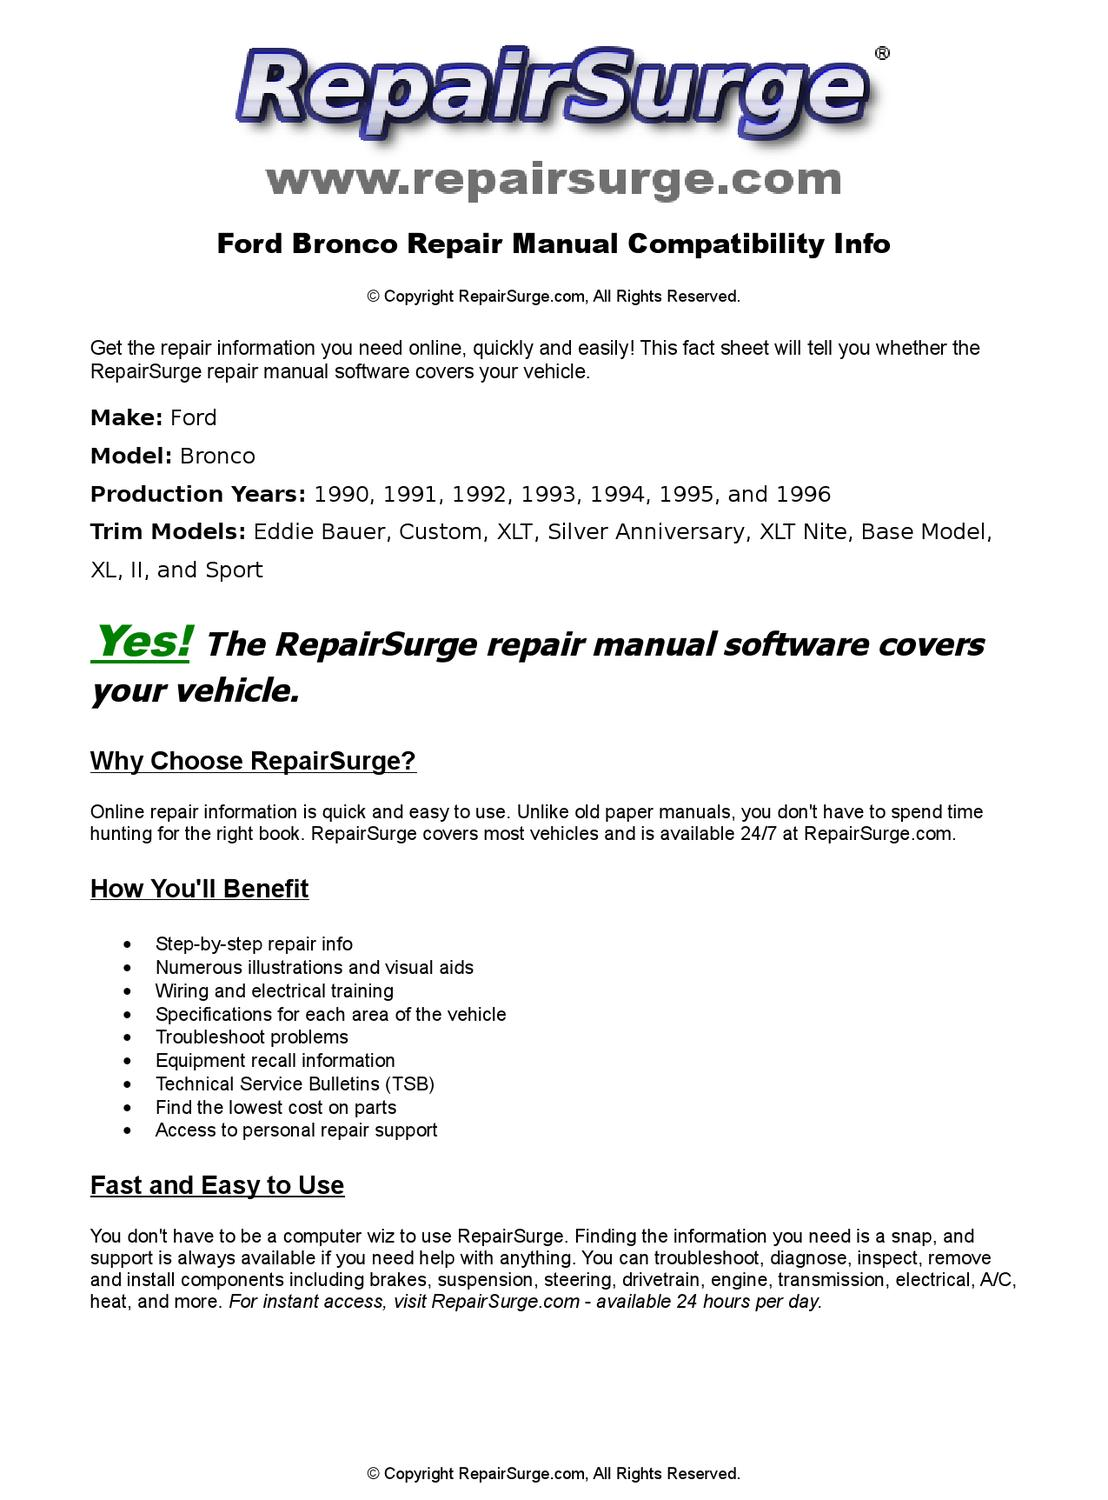 Ford Bronco Online Repair Manual For 1990, 1991, 1992, 1993, 1994, 1995,  and 1996 by RepairSurge - issuu